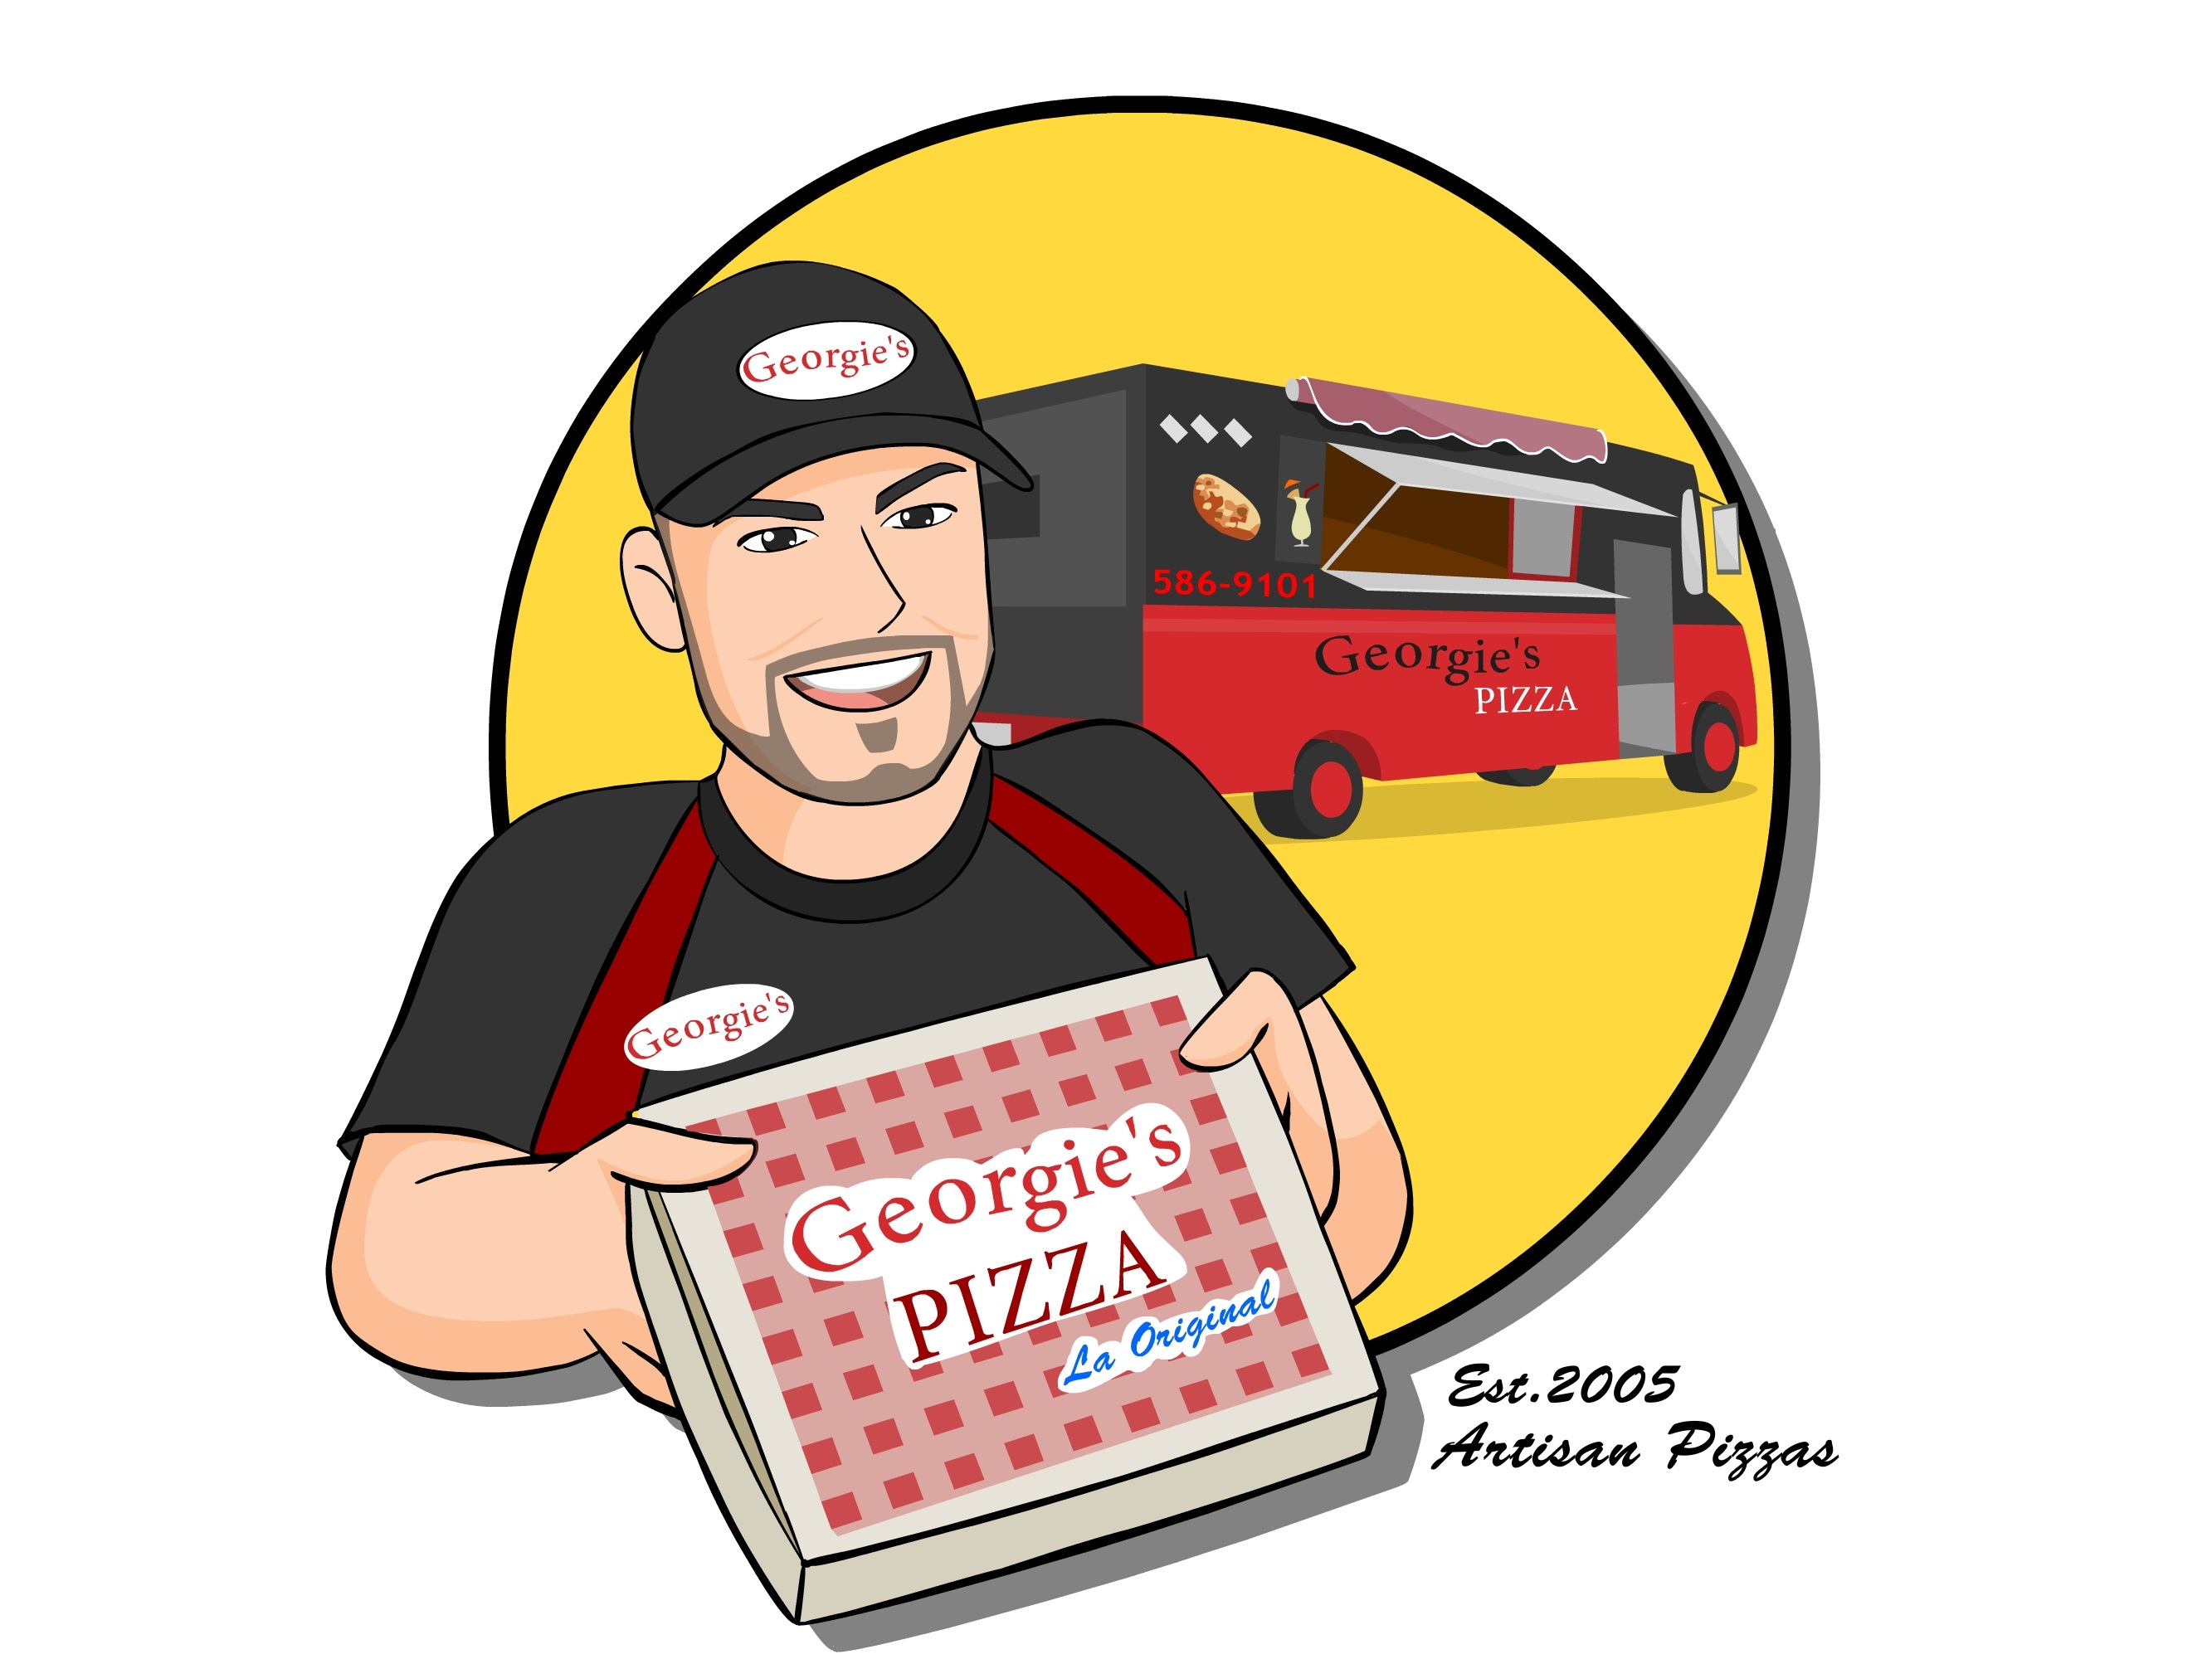 Georgie's Pizza